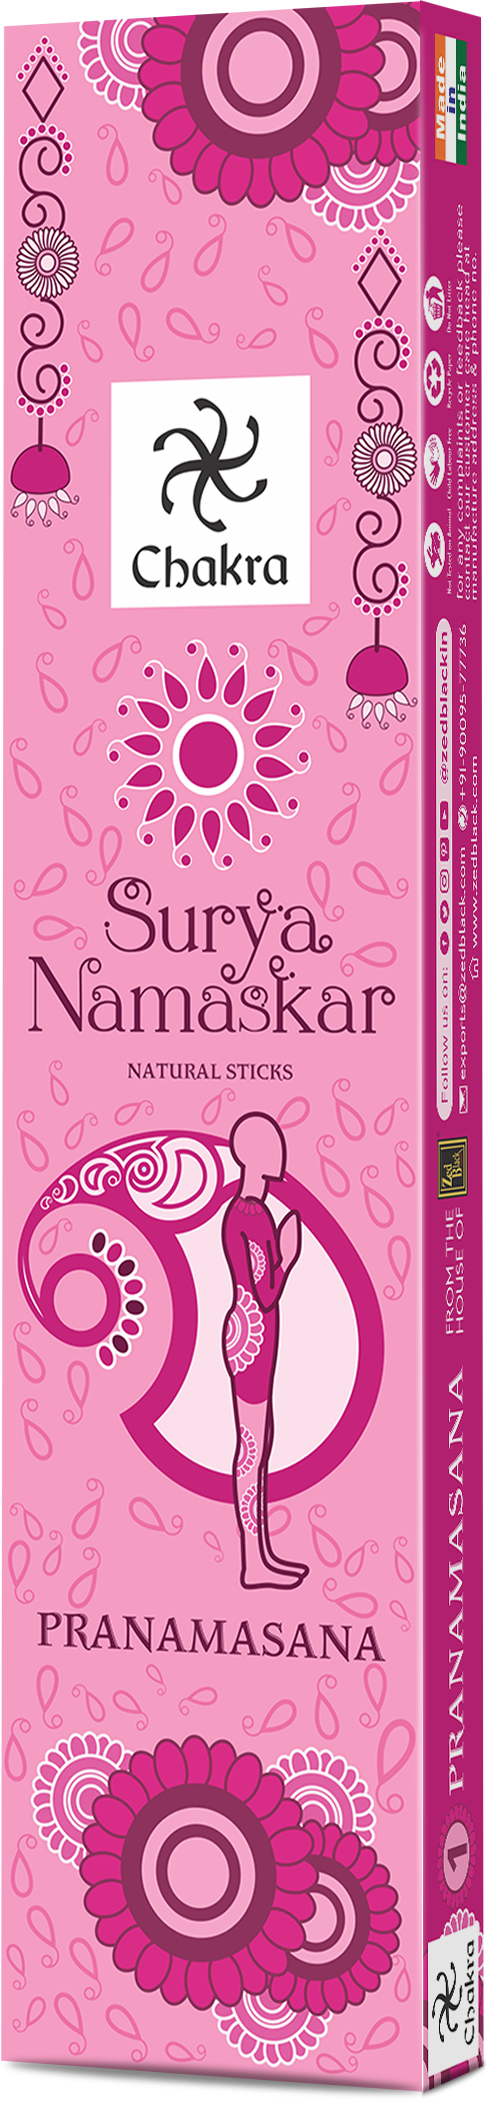 ZED BLACK SURYA NAMASKAR SERIES -Pack of 12 Assorted - The KO Shop Australia Wholesale Suppliers Distributors of New Age Products & Natural Incense